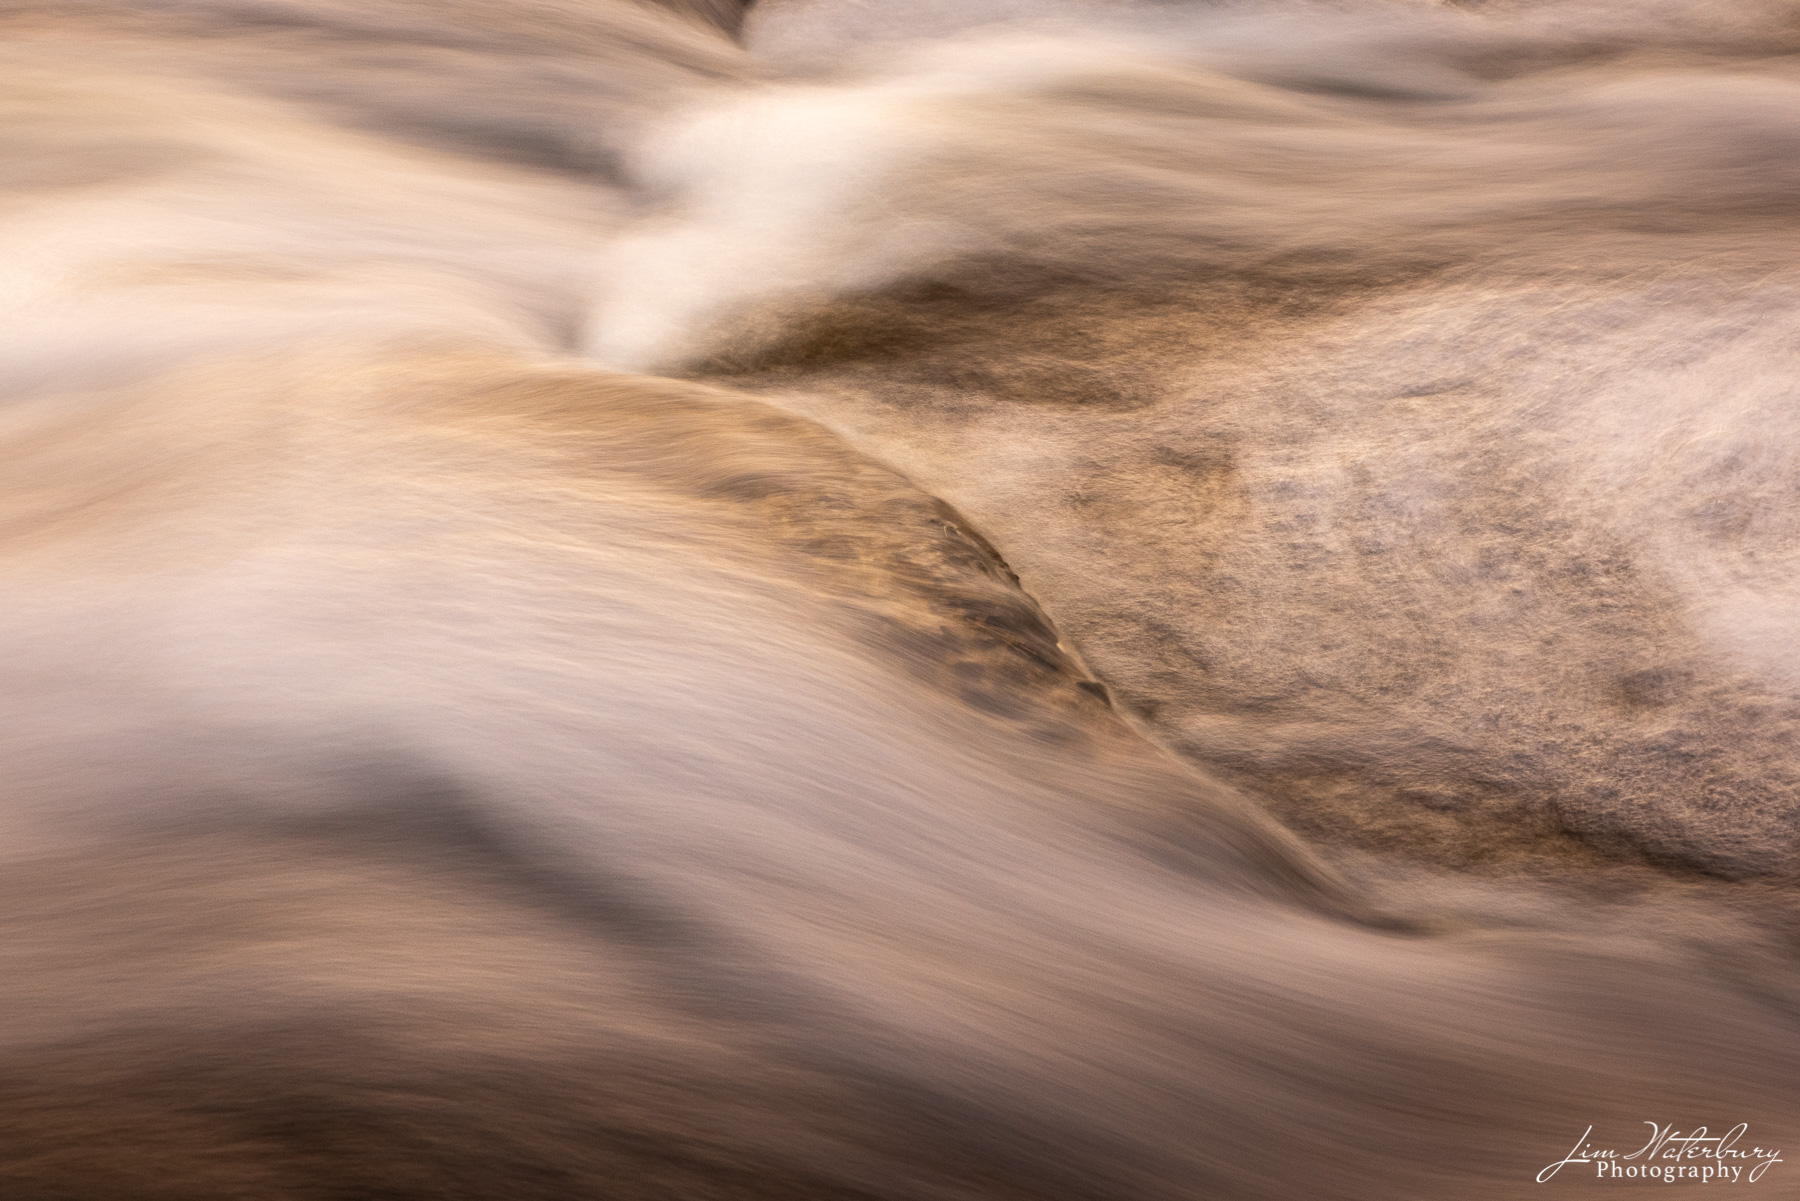 Abstract of water rushing over rocks at Goose River, photographed in the late afternoon light, from the Goose River Peace Corps...